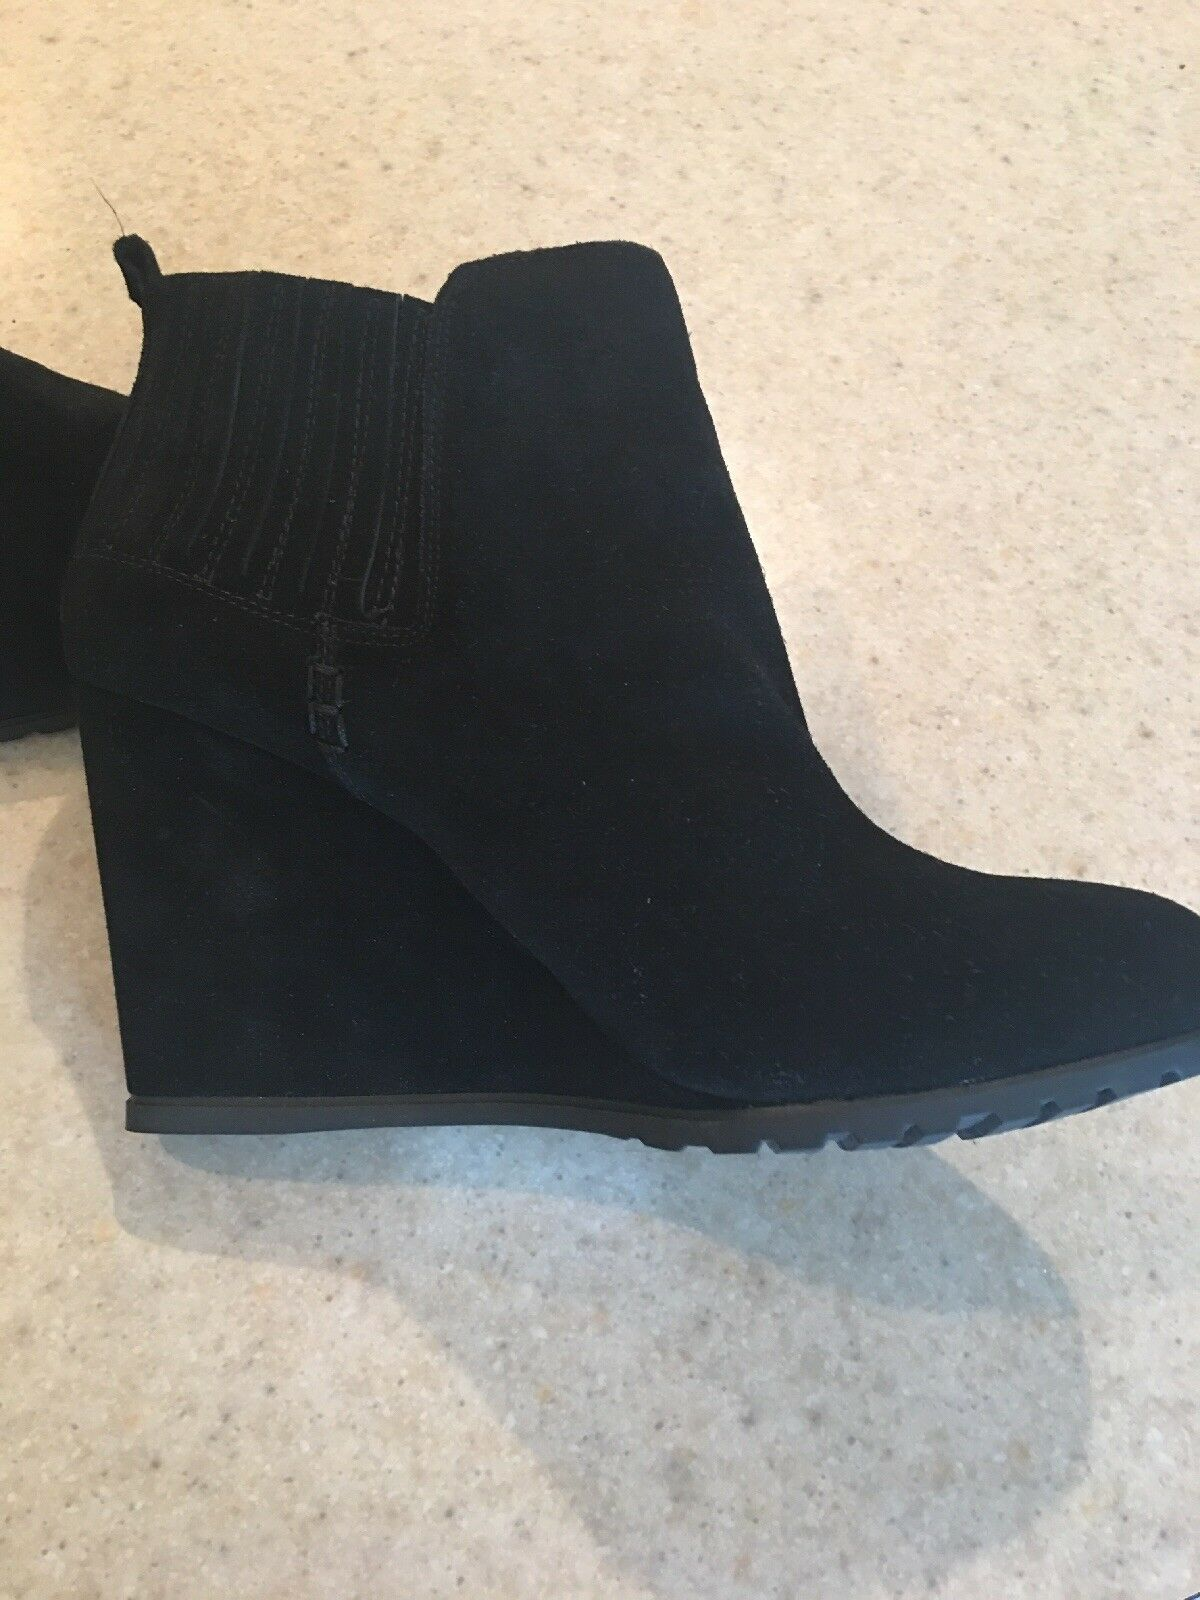 Gianni Bini Black Suede Wedge Heel Ankle Boots Womans Size 11